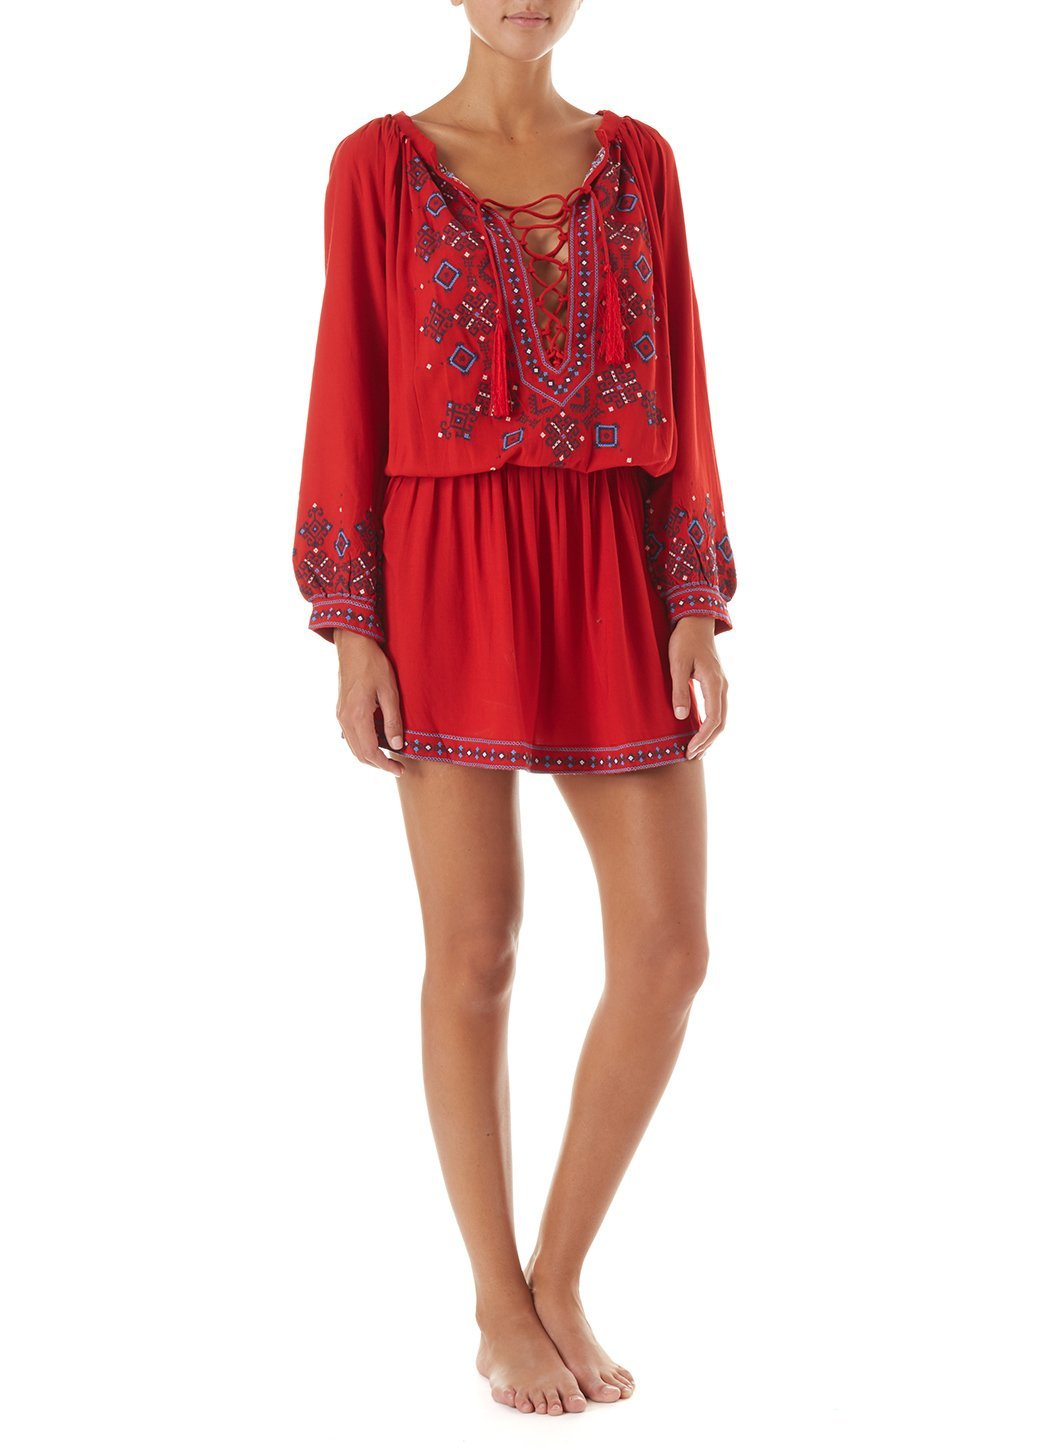 nadja red embroidered 34sleeve short dress 2019 F